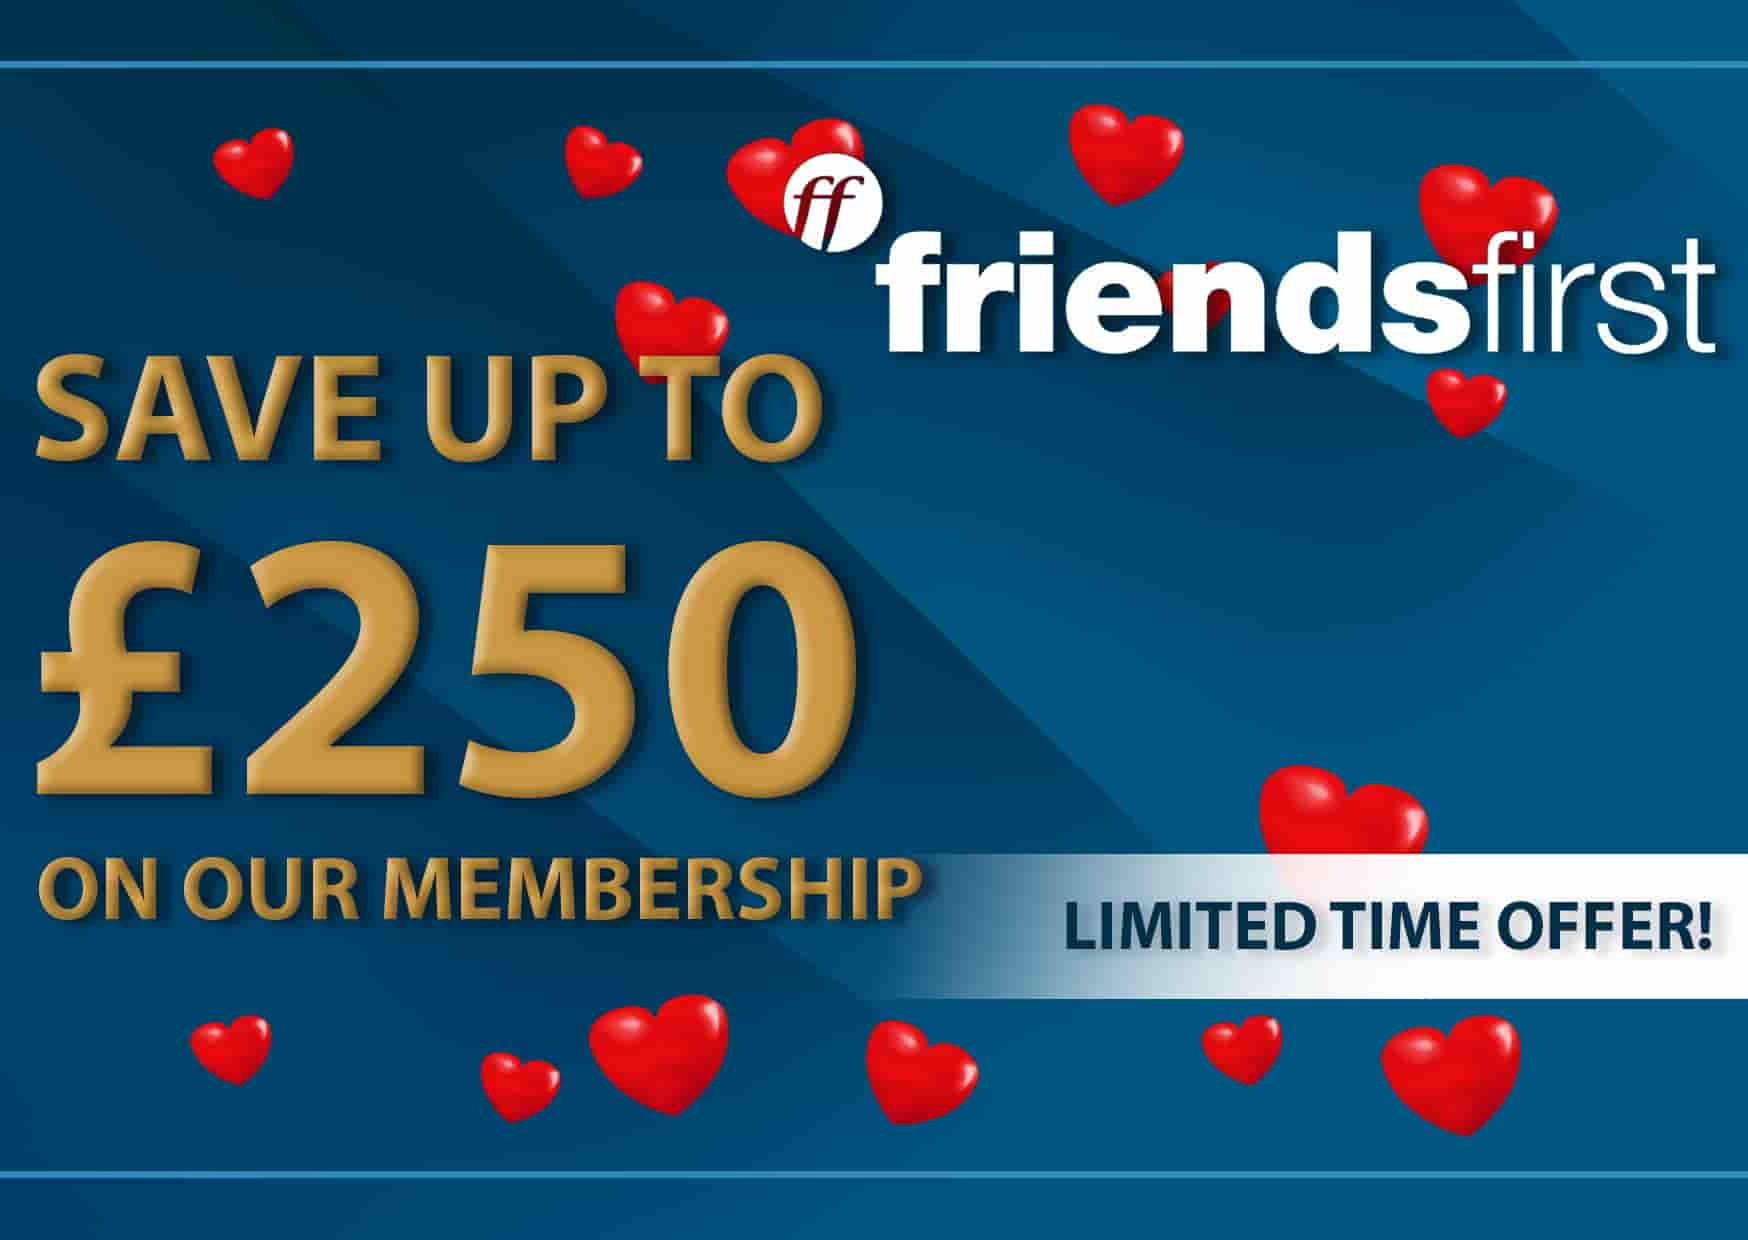 Friends1st Limited Time Offer Voucher